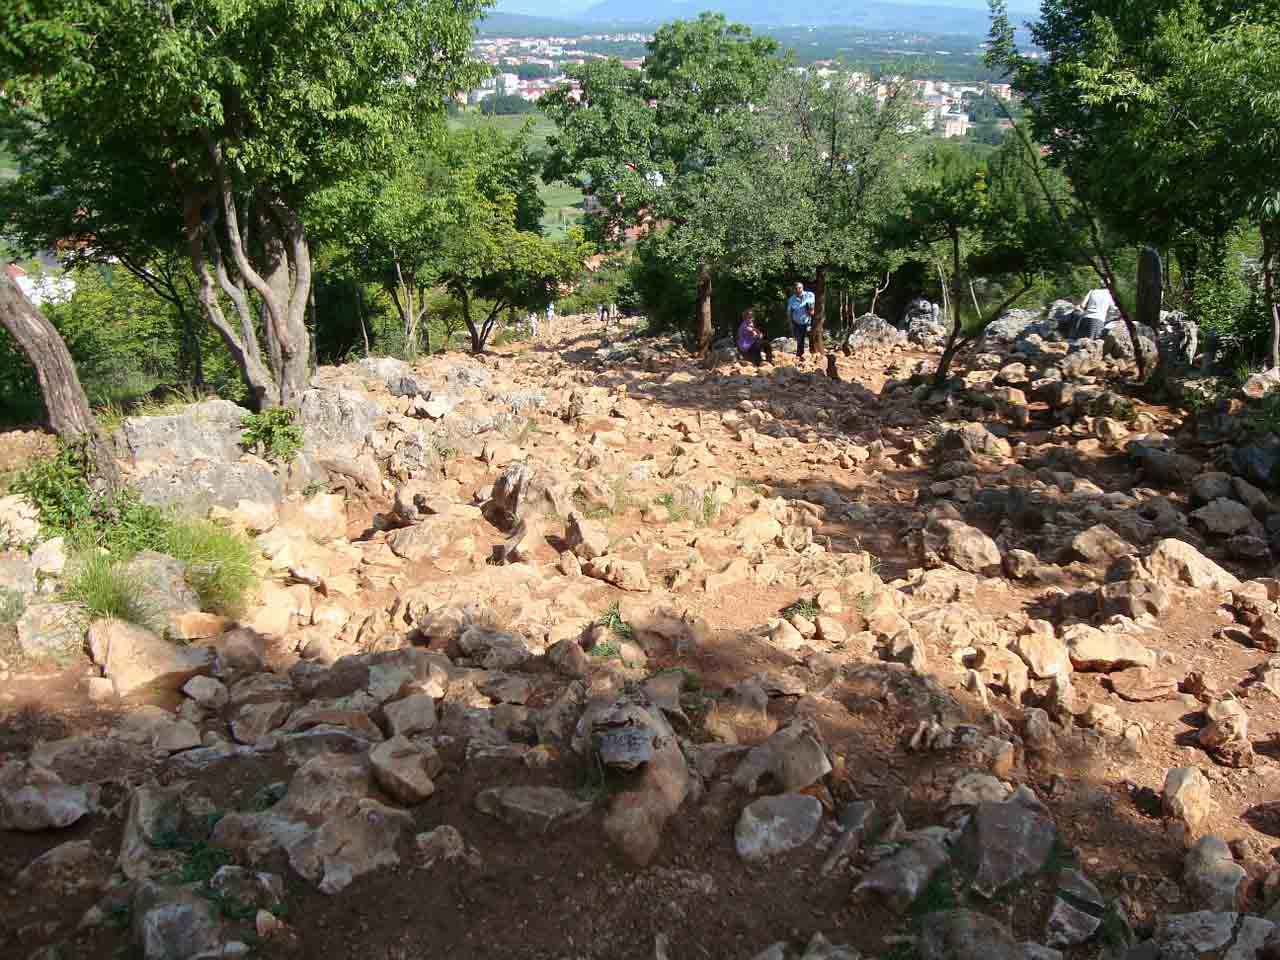 Getting around Medjugorje